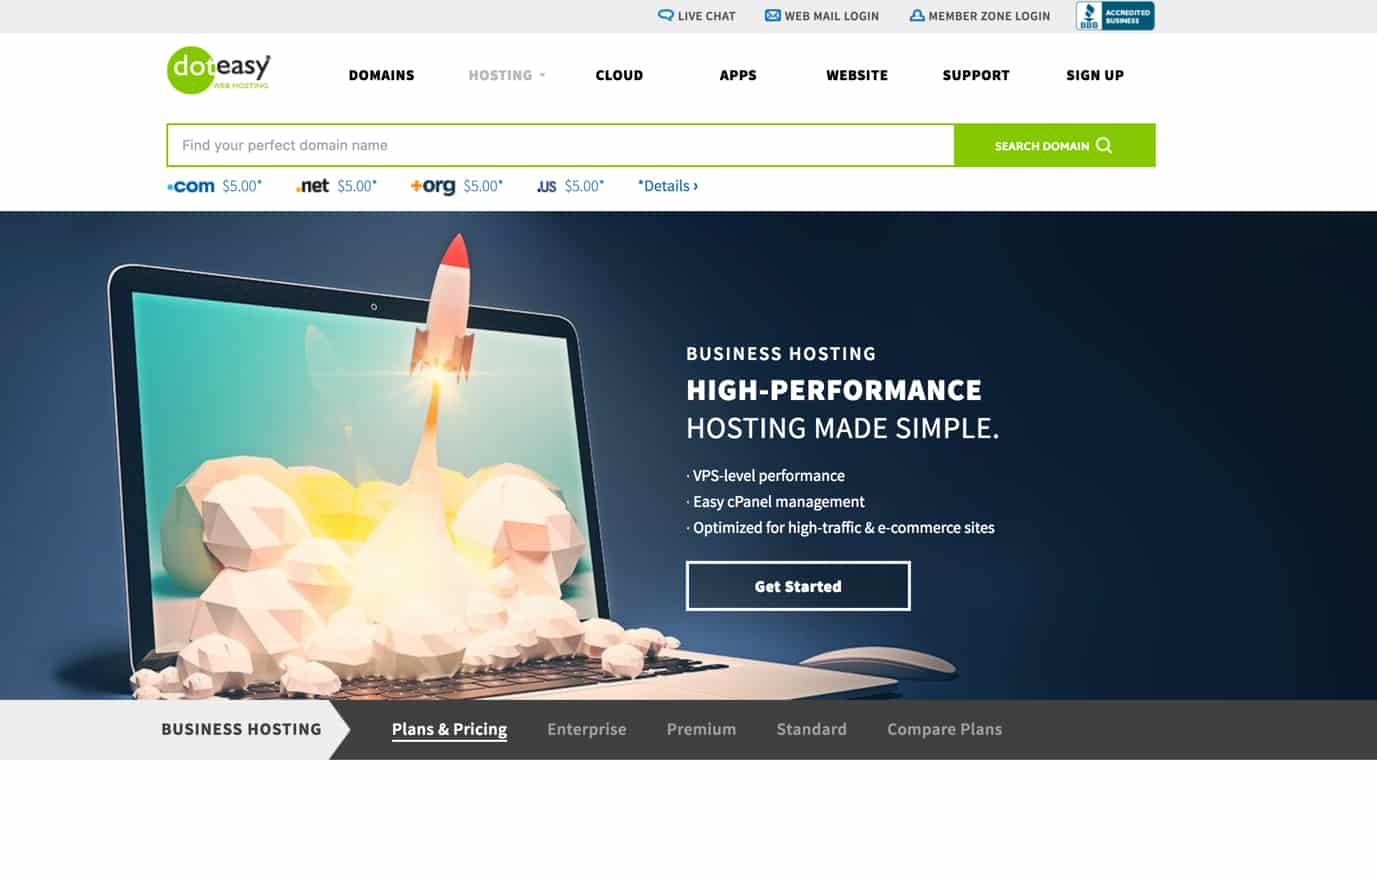 Doteasy Hosting Review: Everything You Need to Launch Your Business